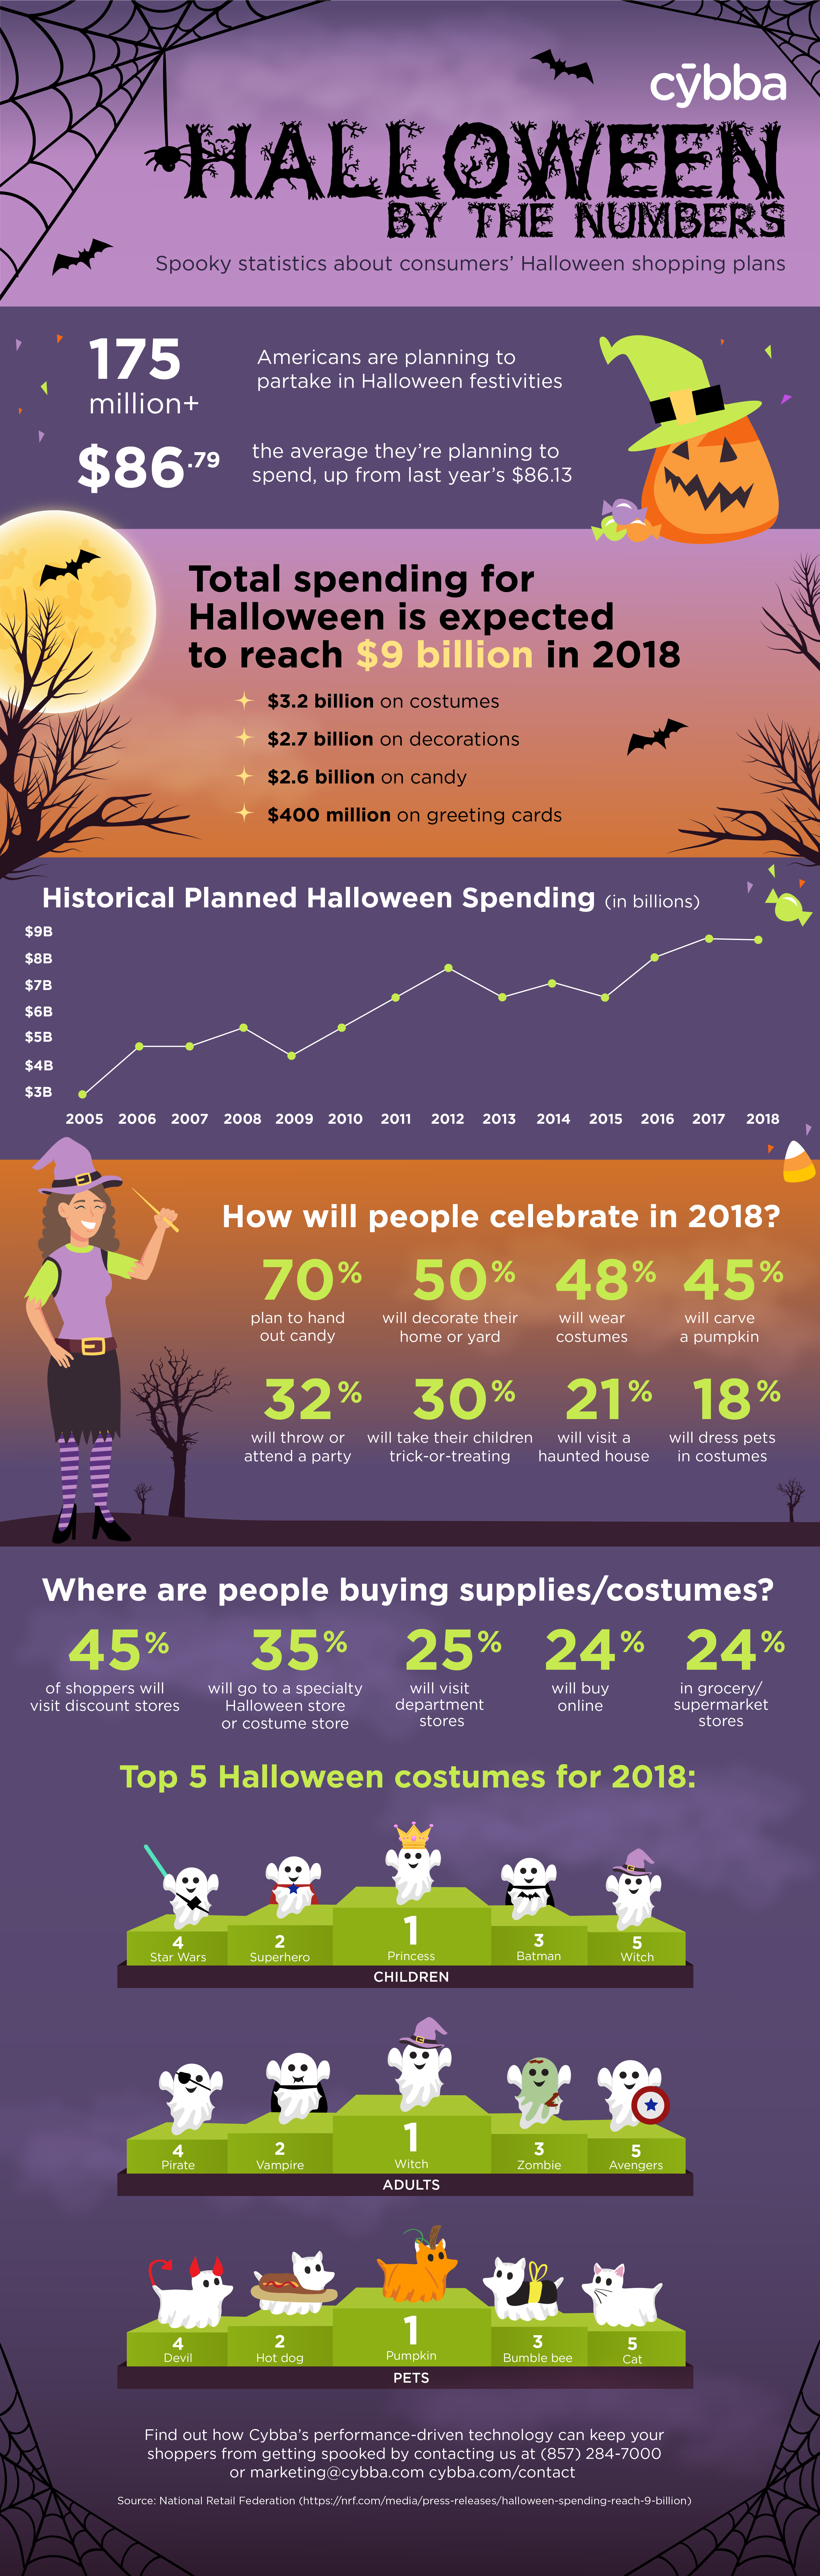 [Infographic] Halloween By The Numbers